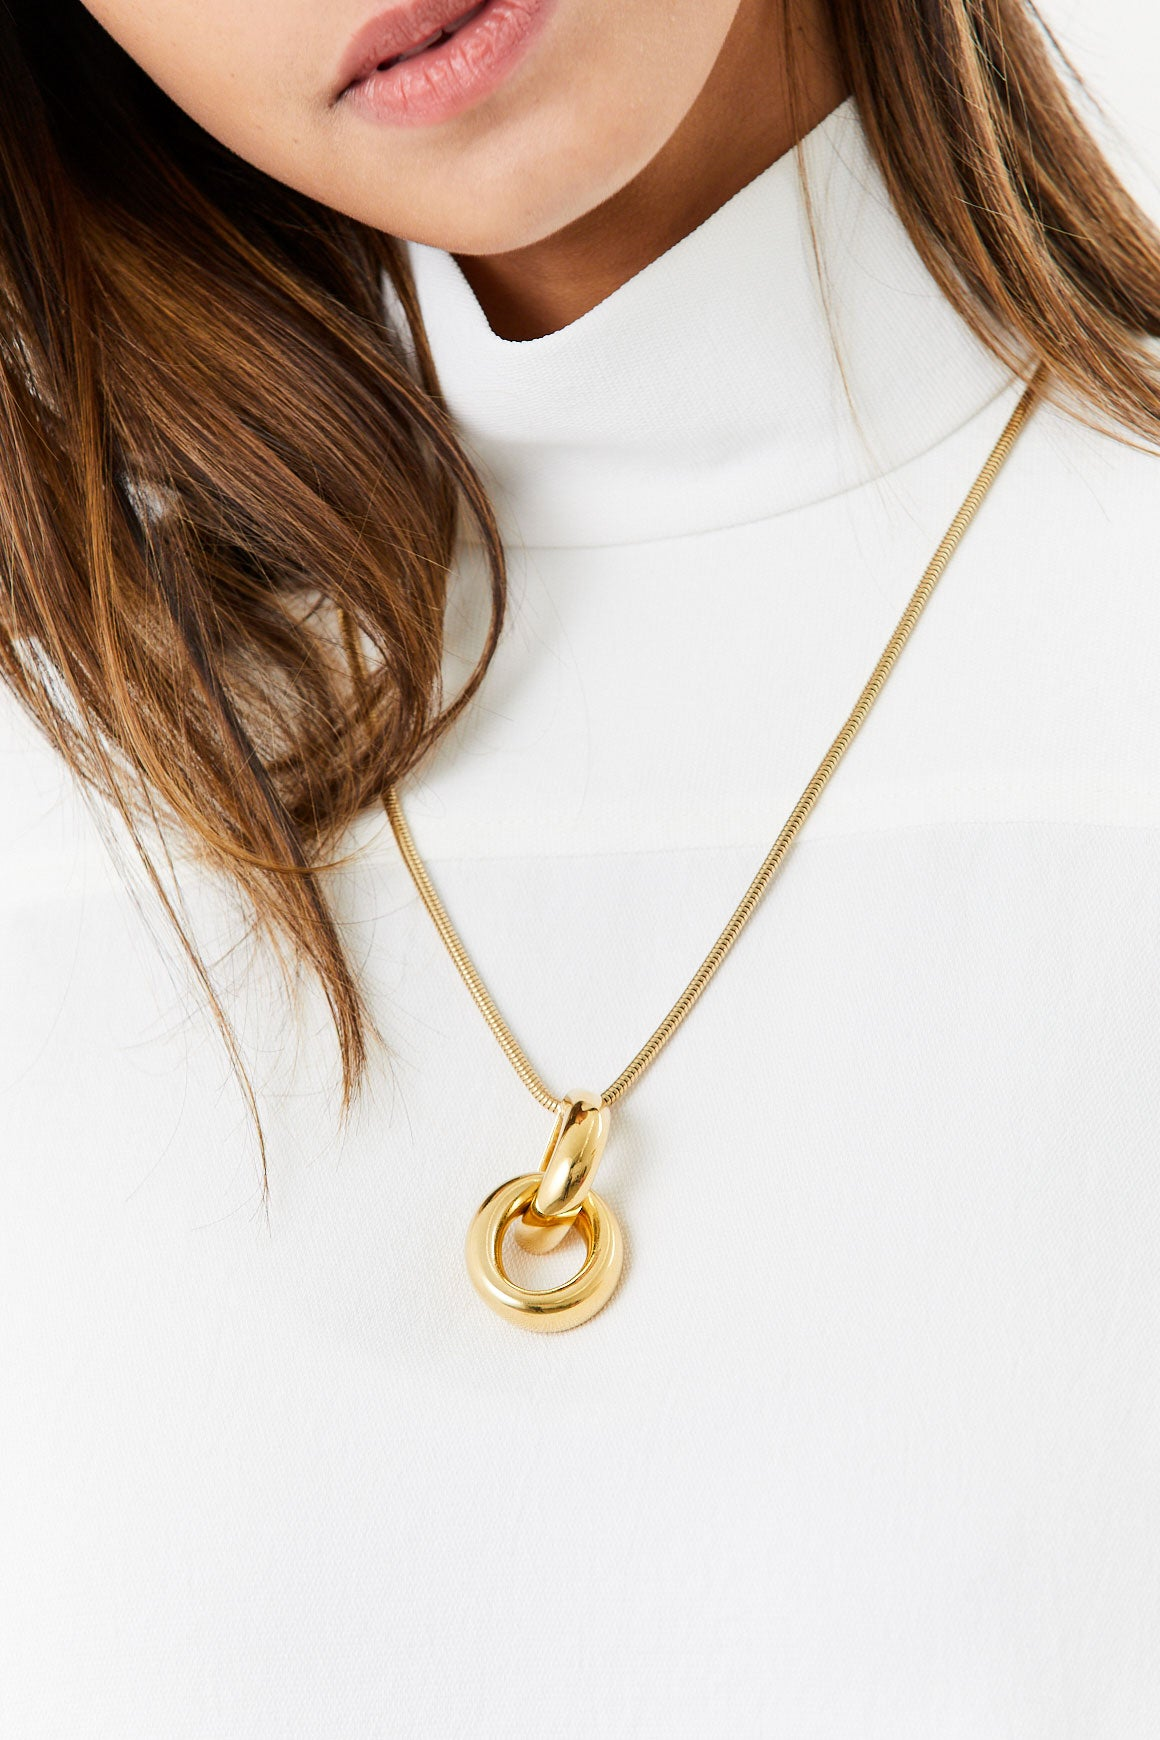 Gabriela Artigas - Link Necklace, Gold